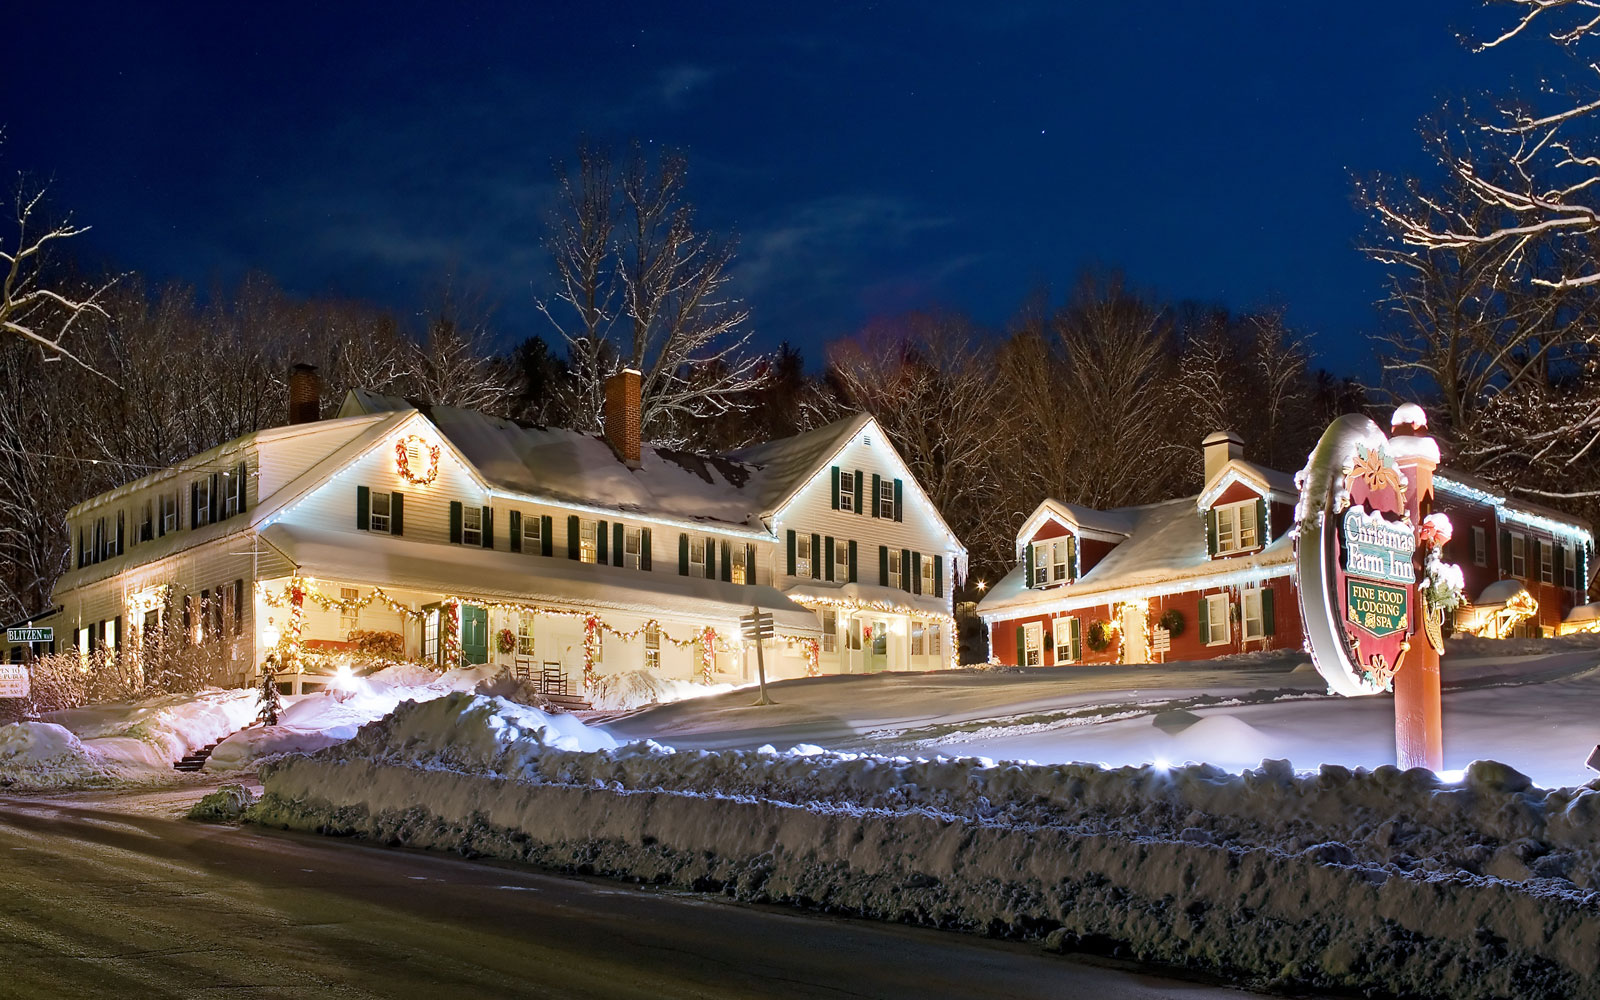 The Christmas Farm Inn Is the Ultimate Holiday Getaway